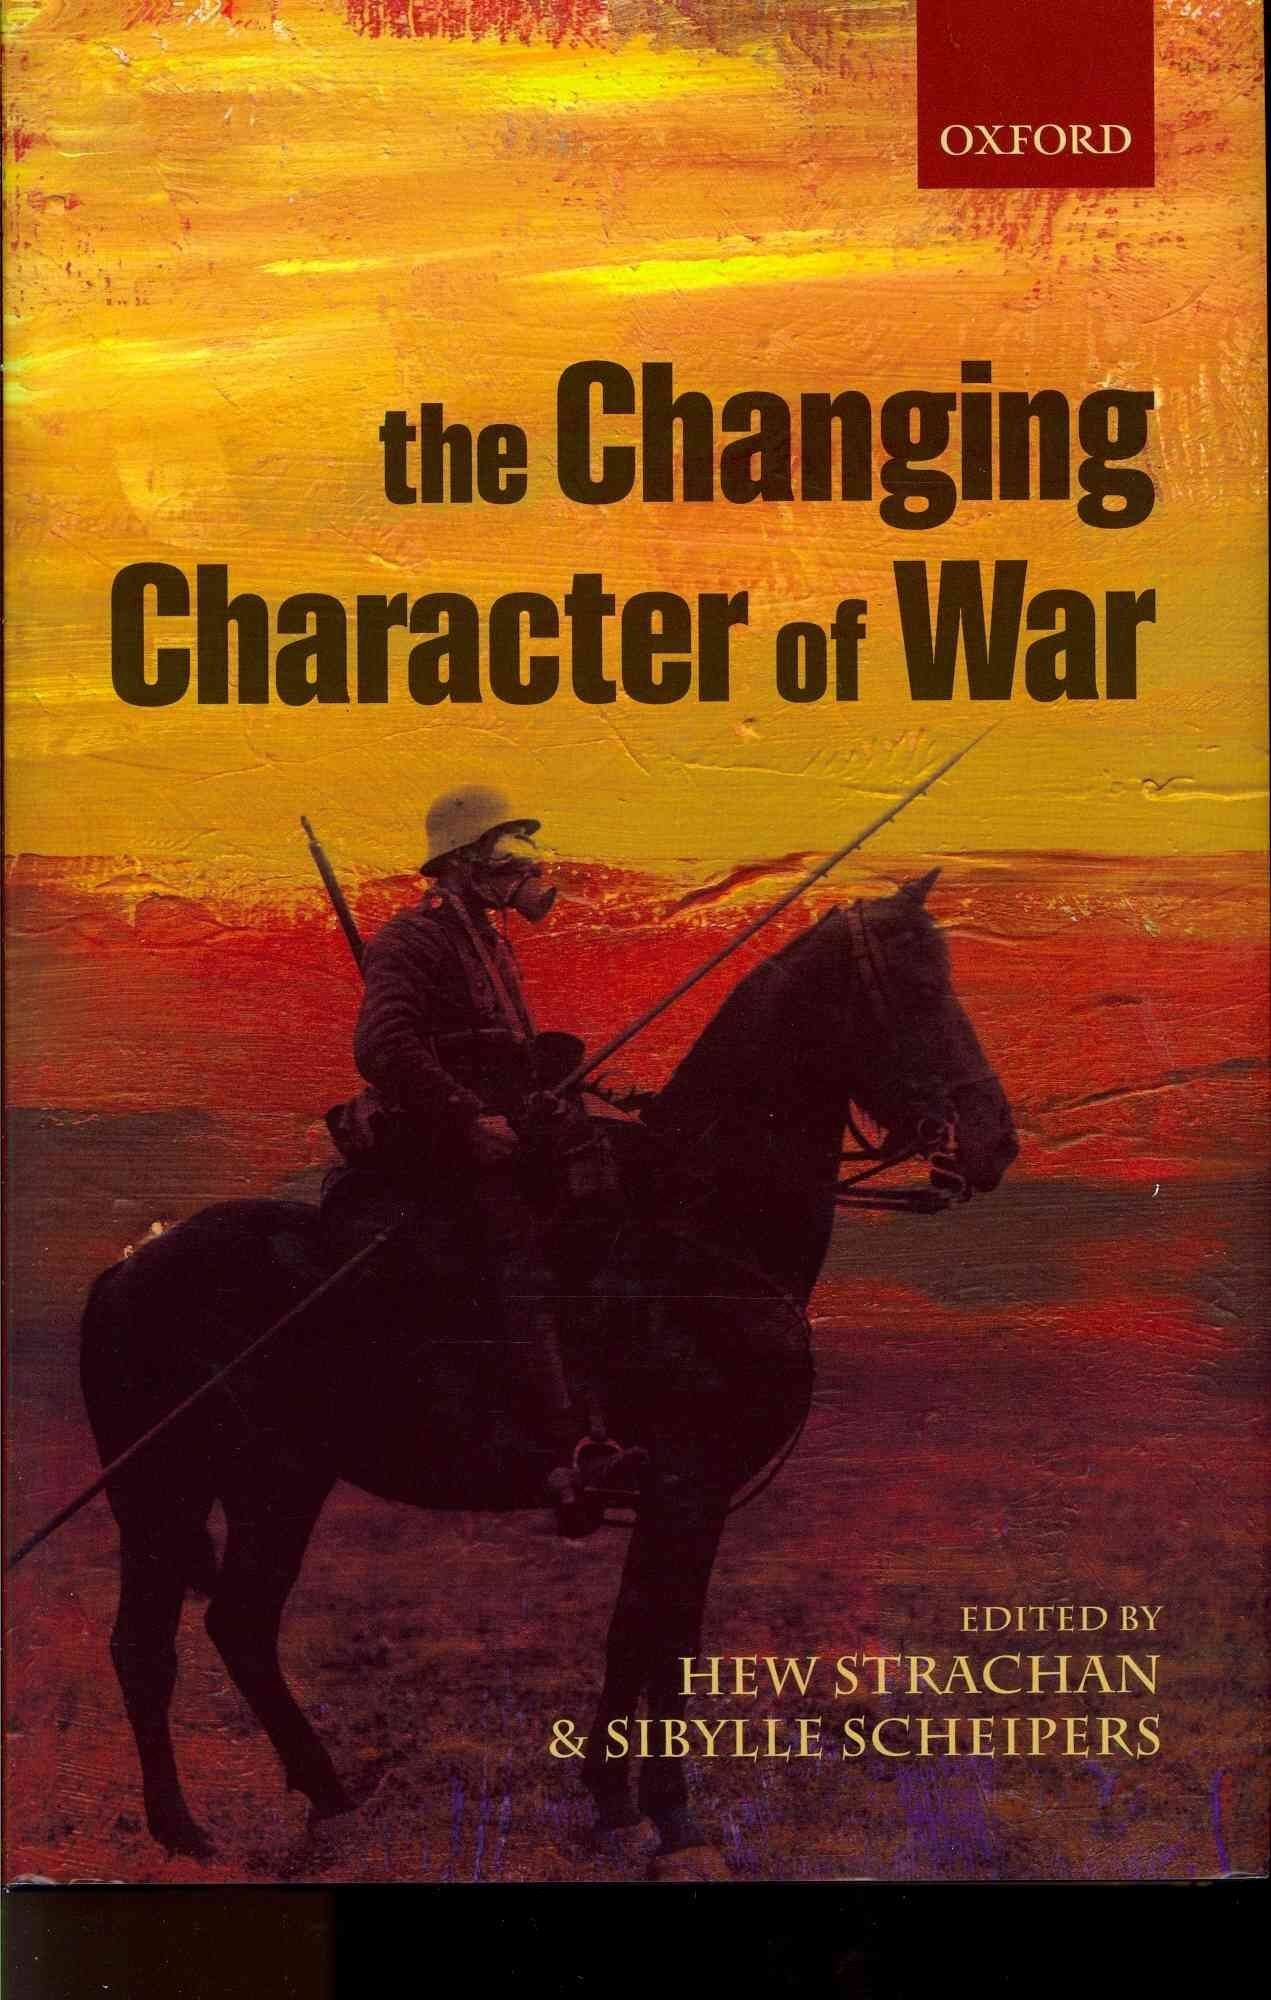 The Changing Character of War - Hew Strachan